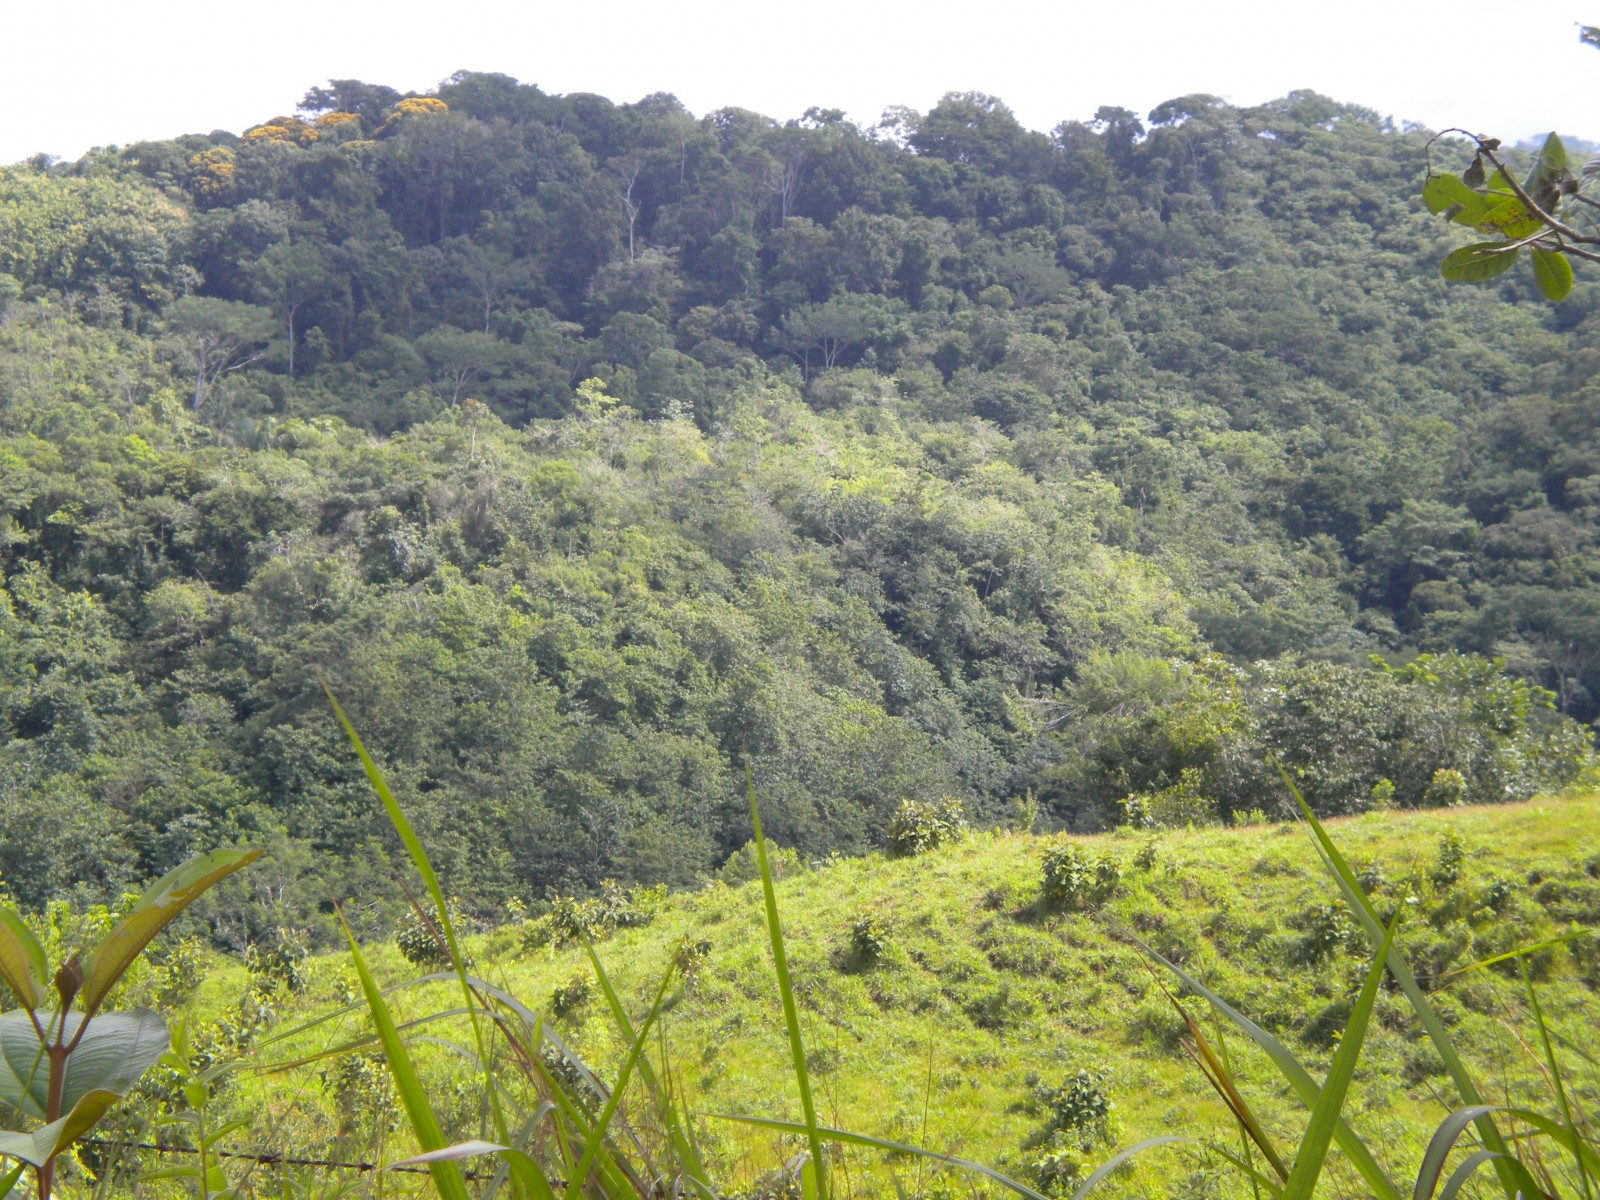 //costaricasol.com/images/jux_real_estate/realties/34/img797_mPFMdv.jpg